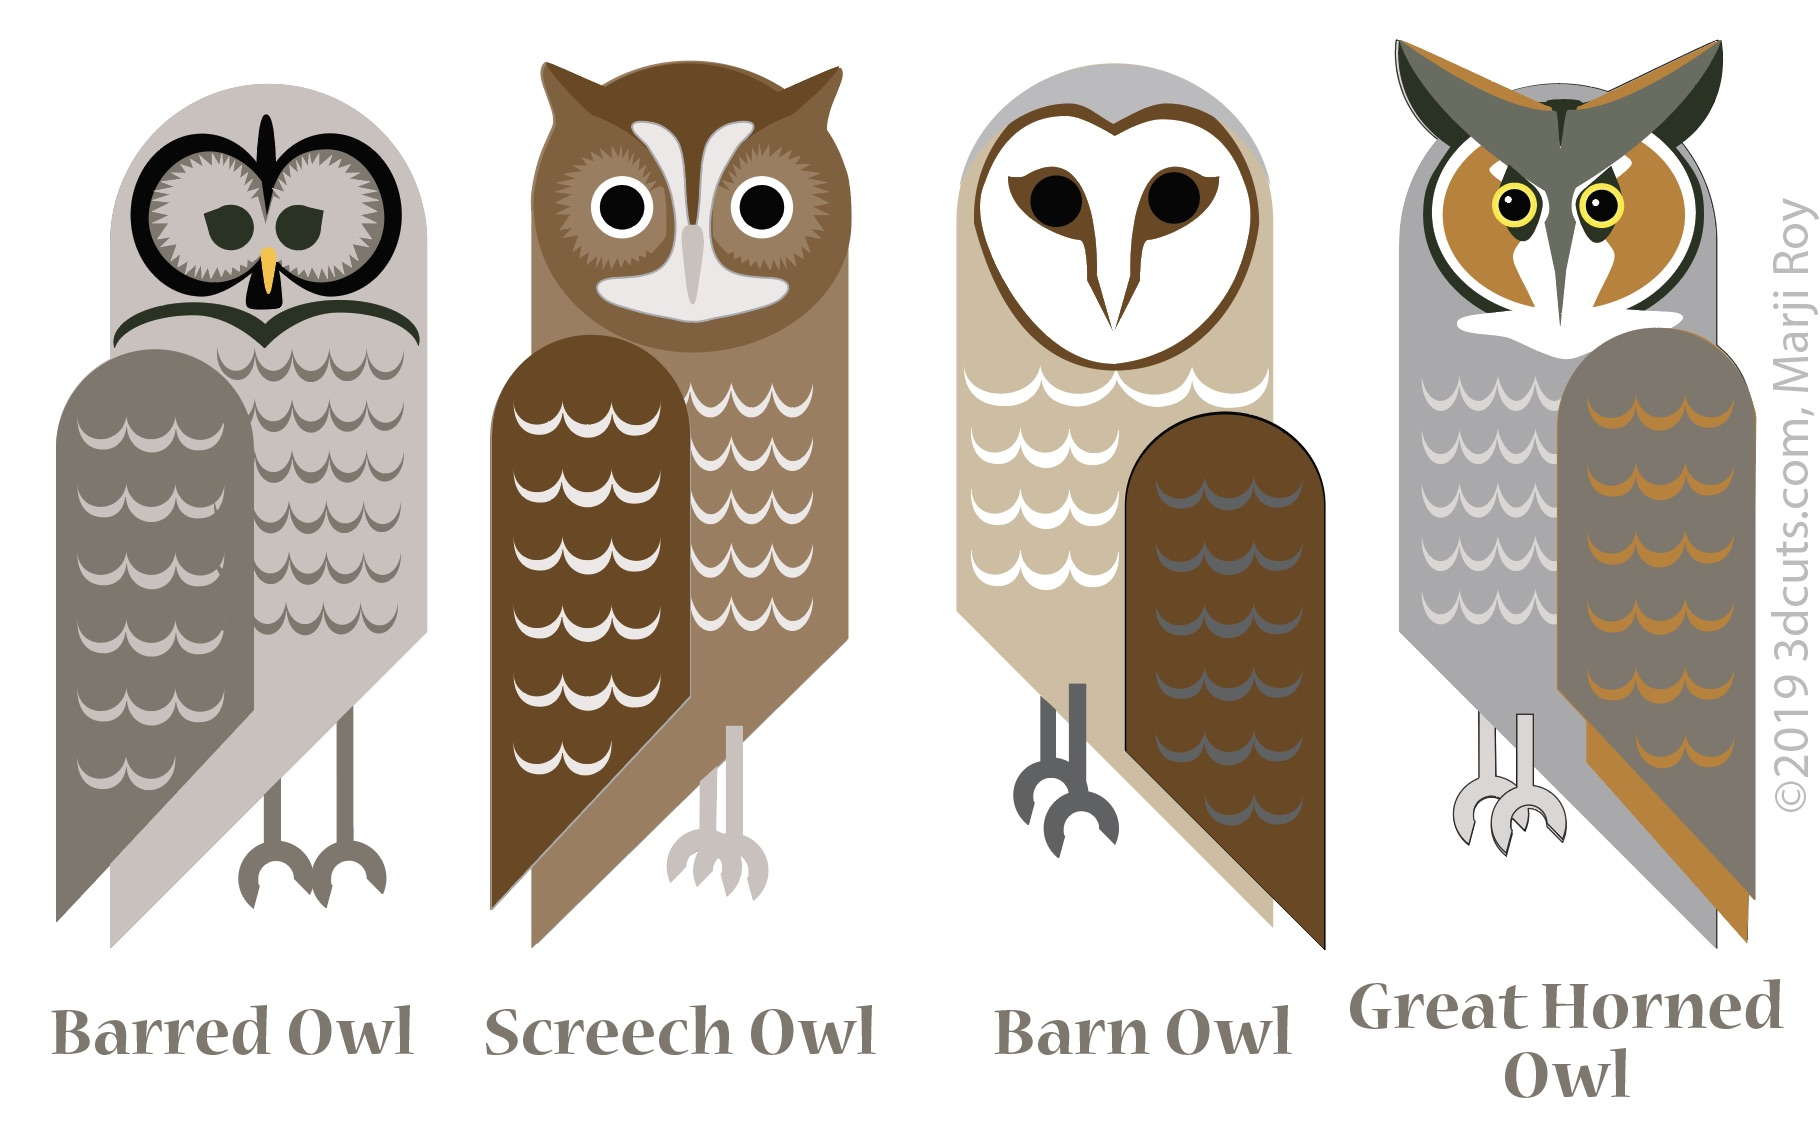 Owl Series by 3DCuts.com, Marji Roy, 3D cutting files in .svg, .dxf, and .pdf formats for use with Silhouette, Cricut and other cutting machines.